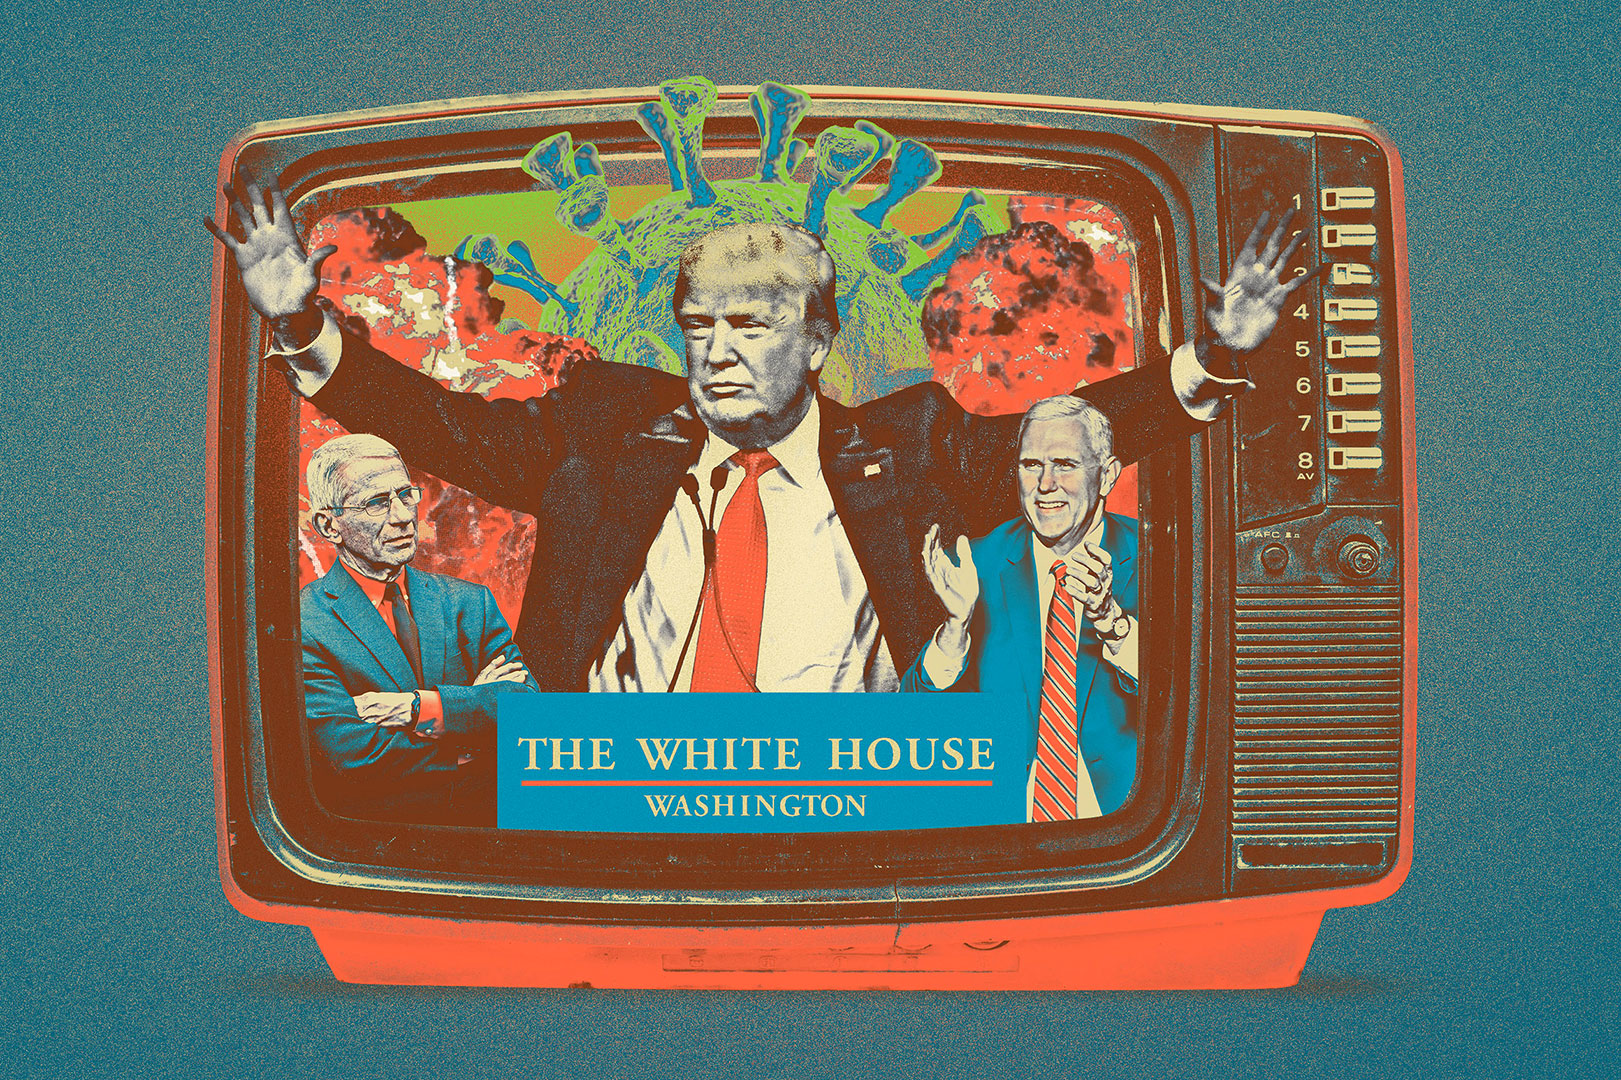 Max-o-matic: Politico: Trump, Covid & TV